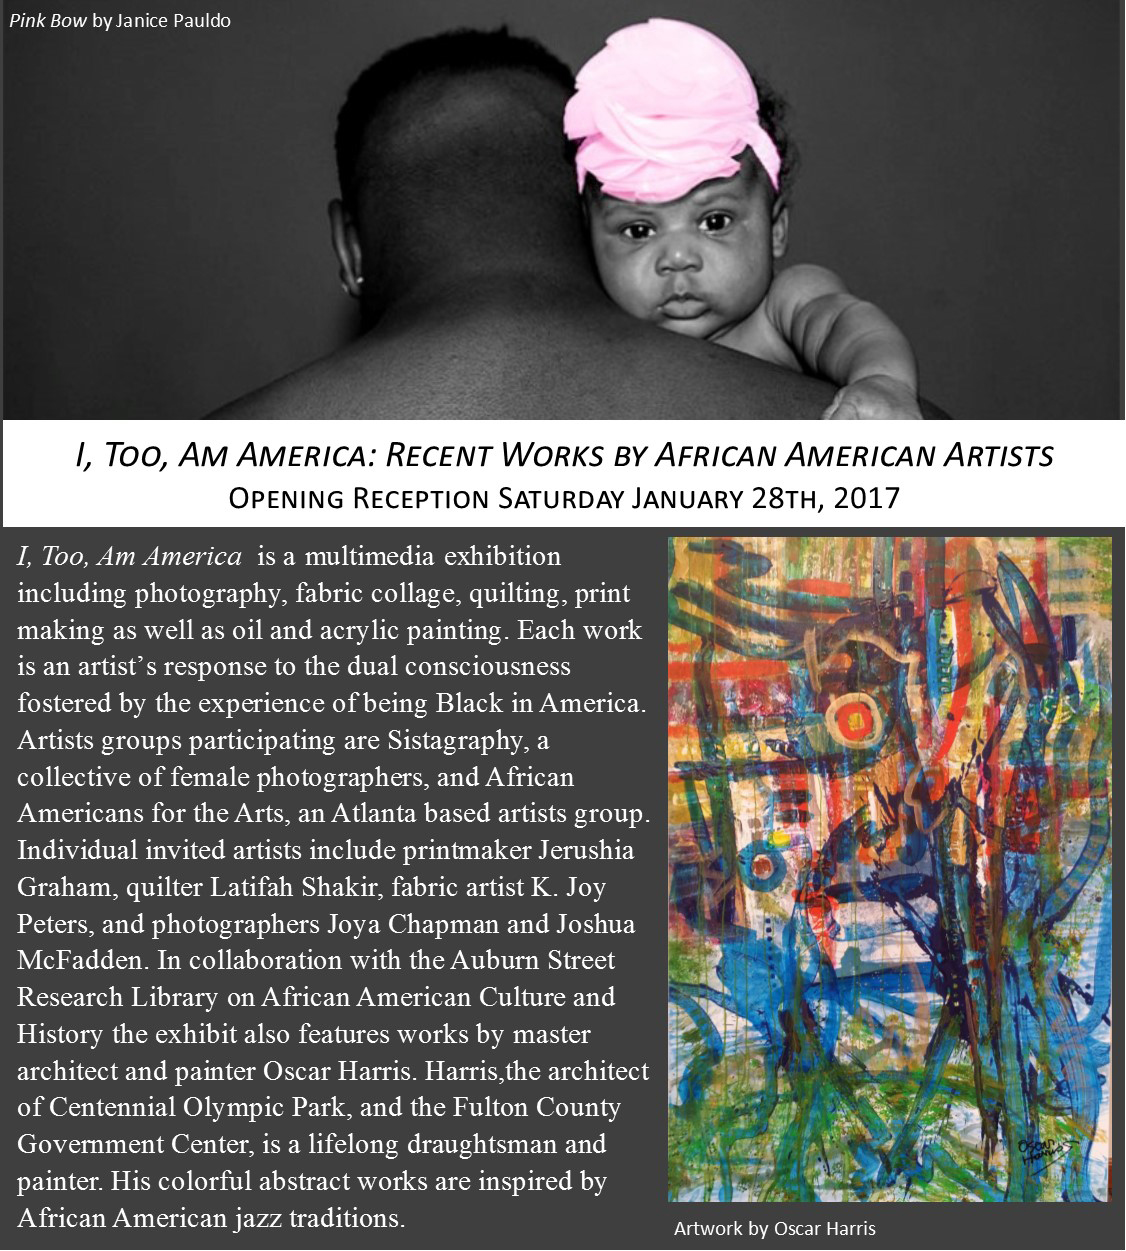 flyer for art exhibition with african american man holding a baby